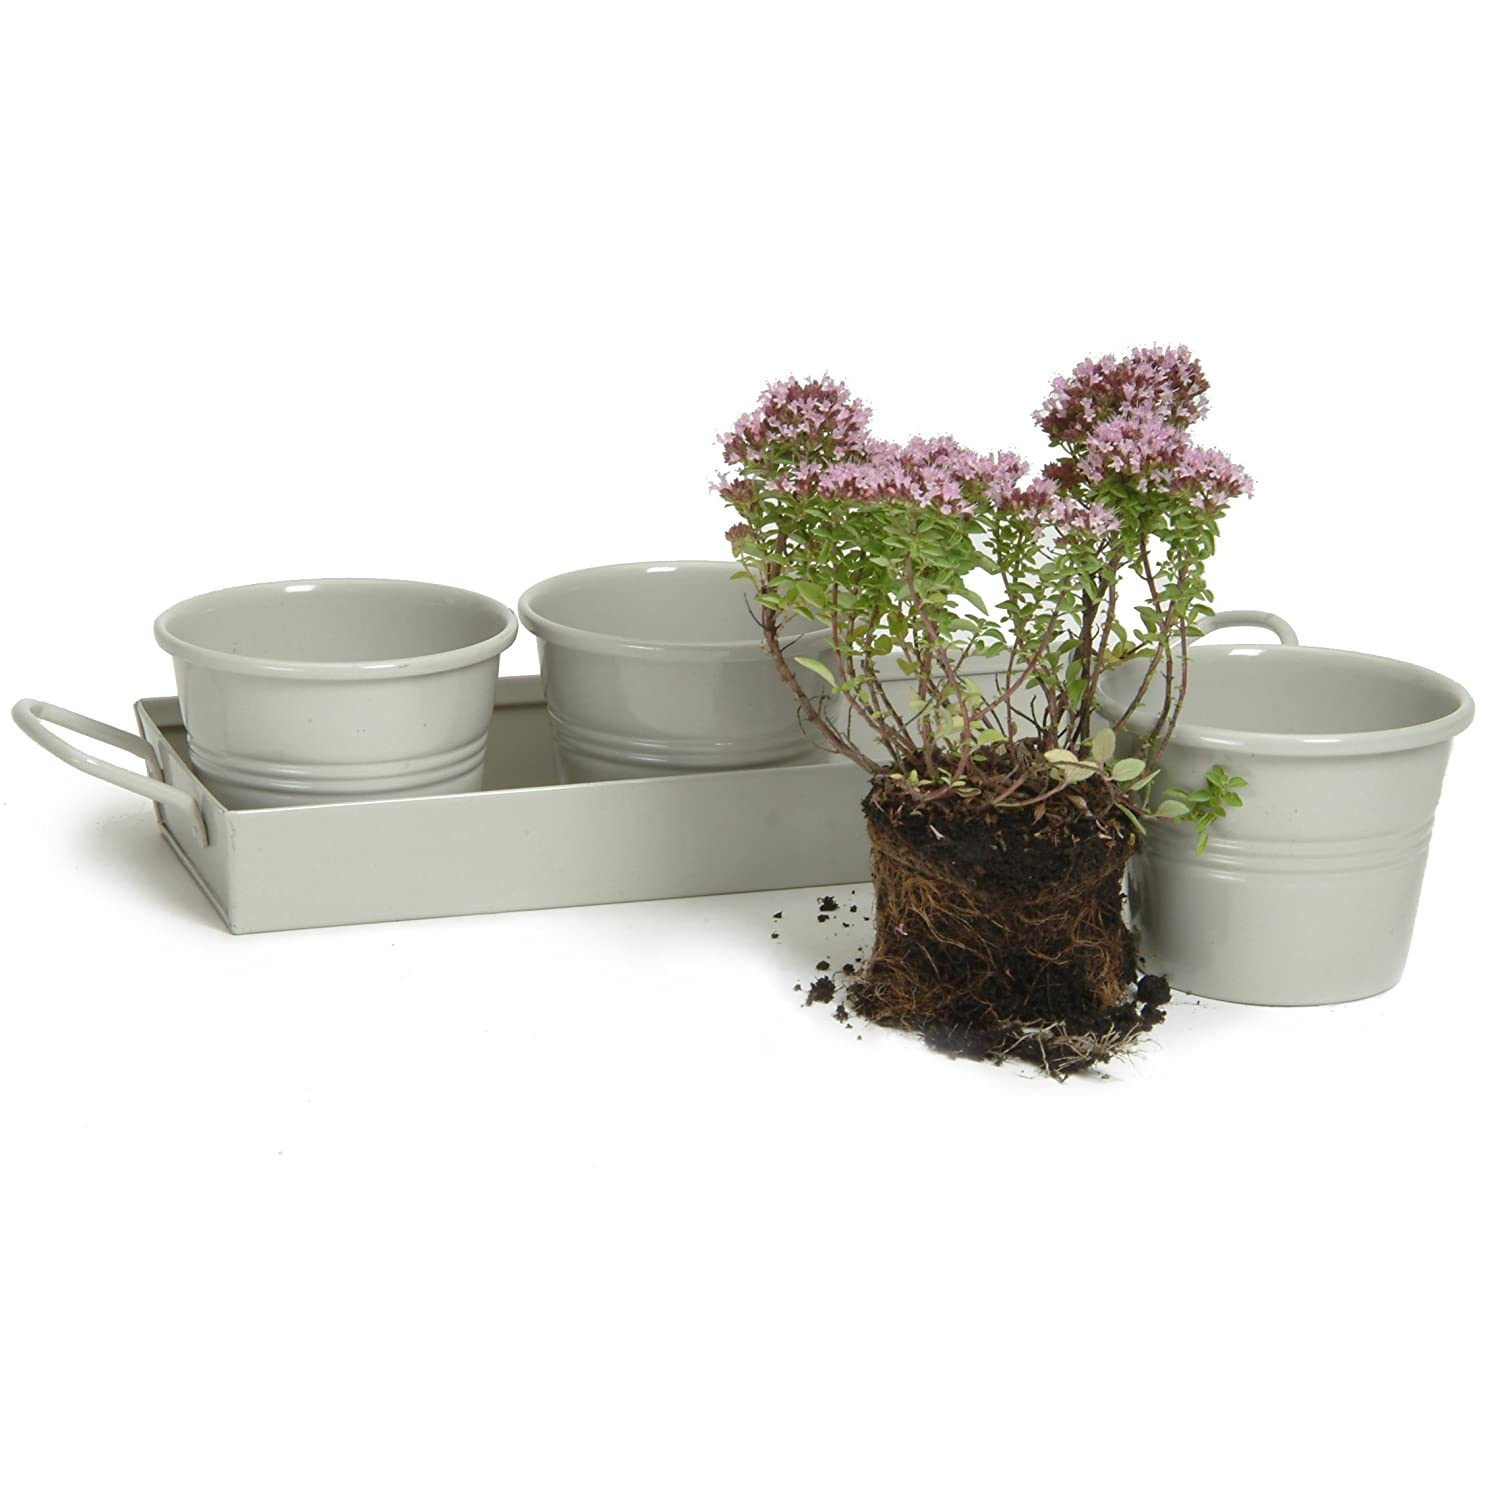 Kitchen Window Herb Planter: Kitchen Herb Pots Wooden Planter Window Sill Garden Plant